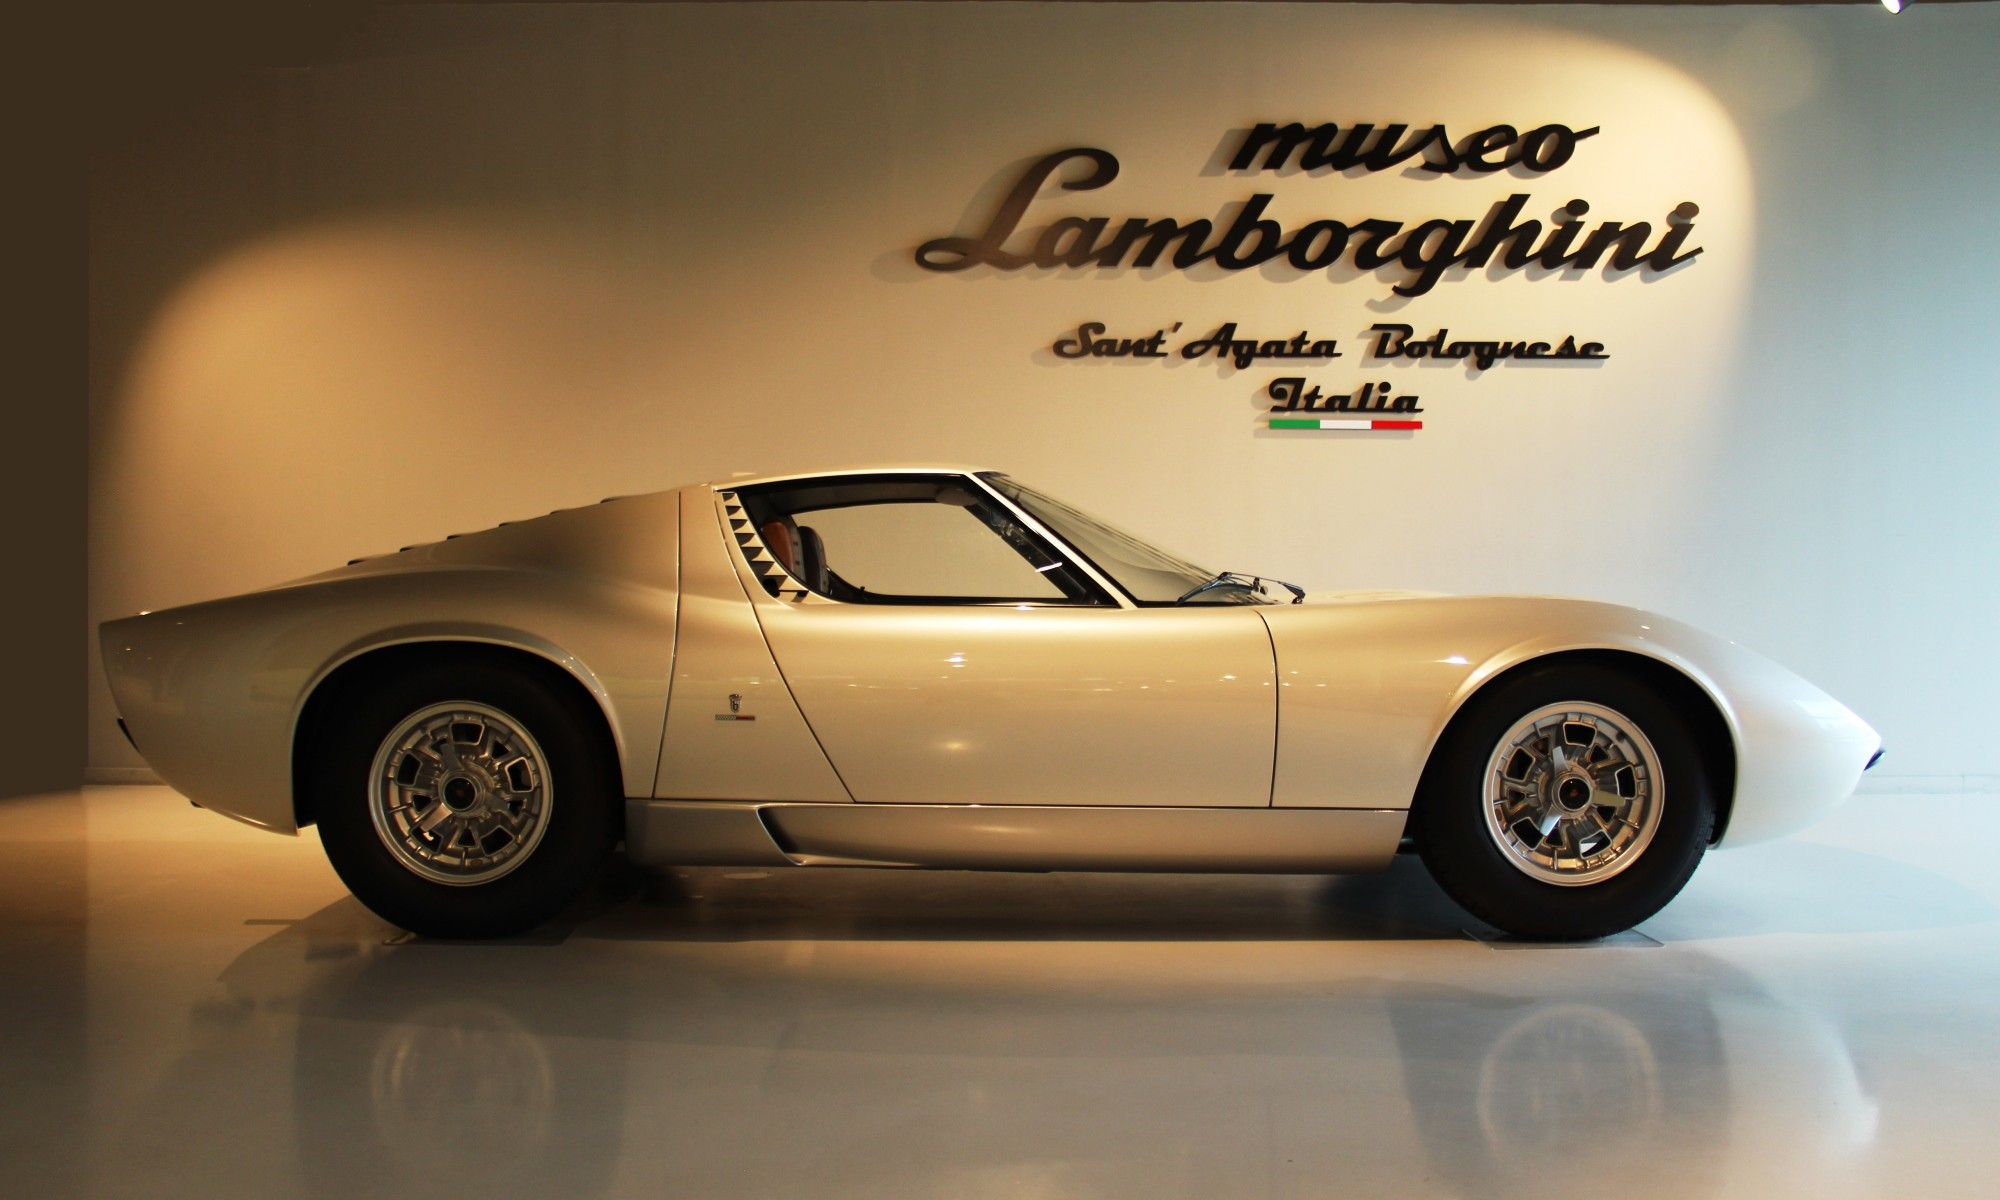 Lamborghini Museum features a beautiful Miura